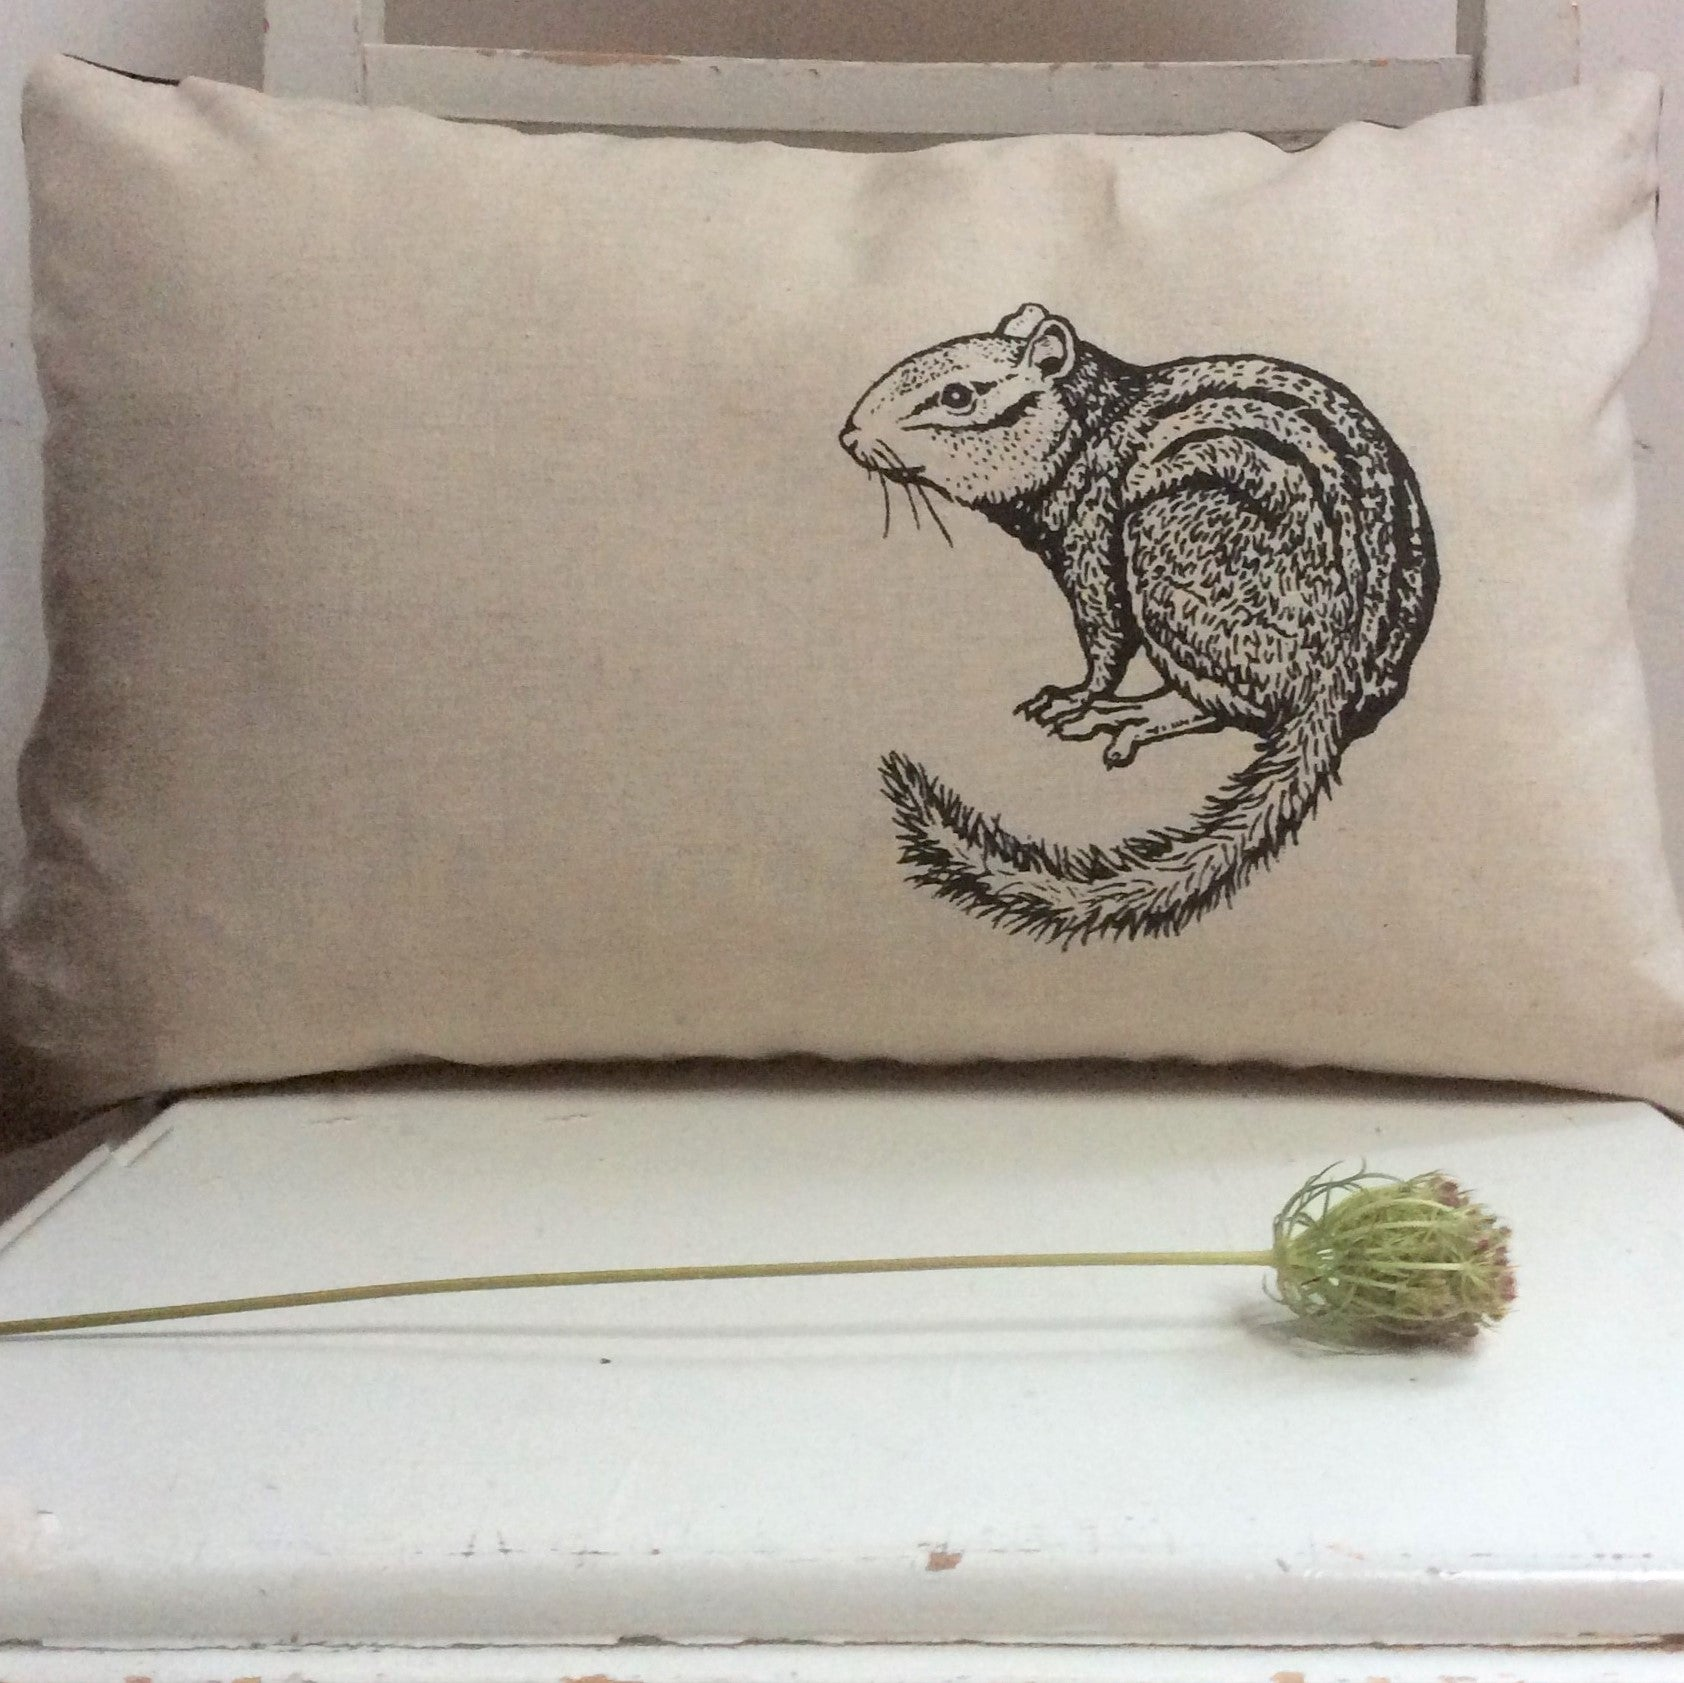 Wildlife Illustration Pillowcase and Pillow - Chipmunk